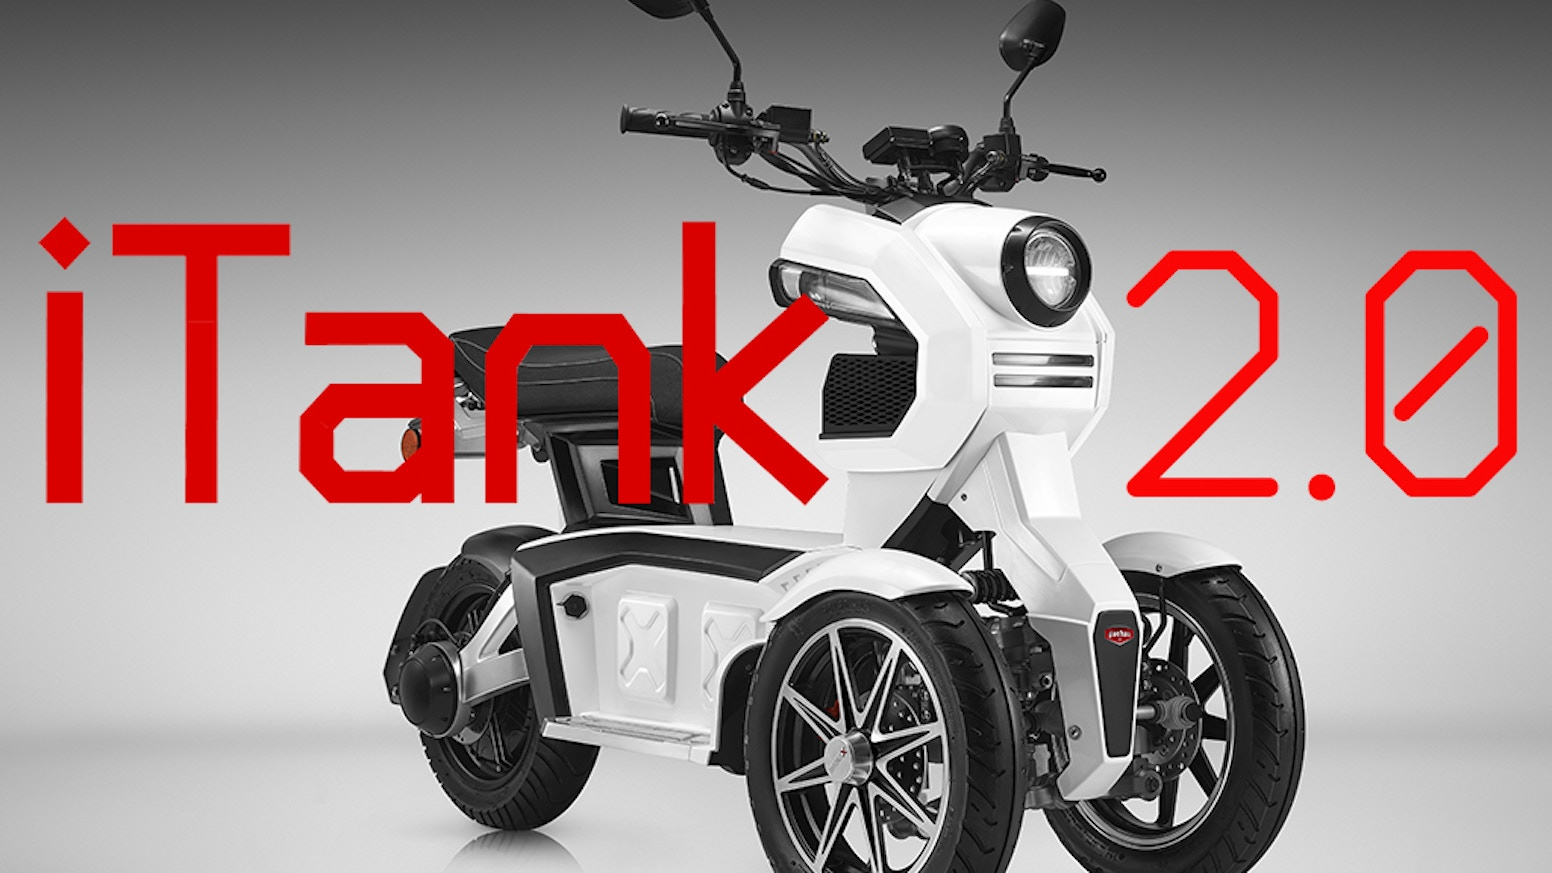 Doohan Itank 20 Improved 3 Wheel Urban Crossover Scooter By Kartik Electric Wiring Schematic Scooters For Sale The Is A Game Changerand Ready In 60 Days Get